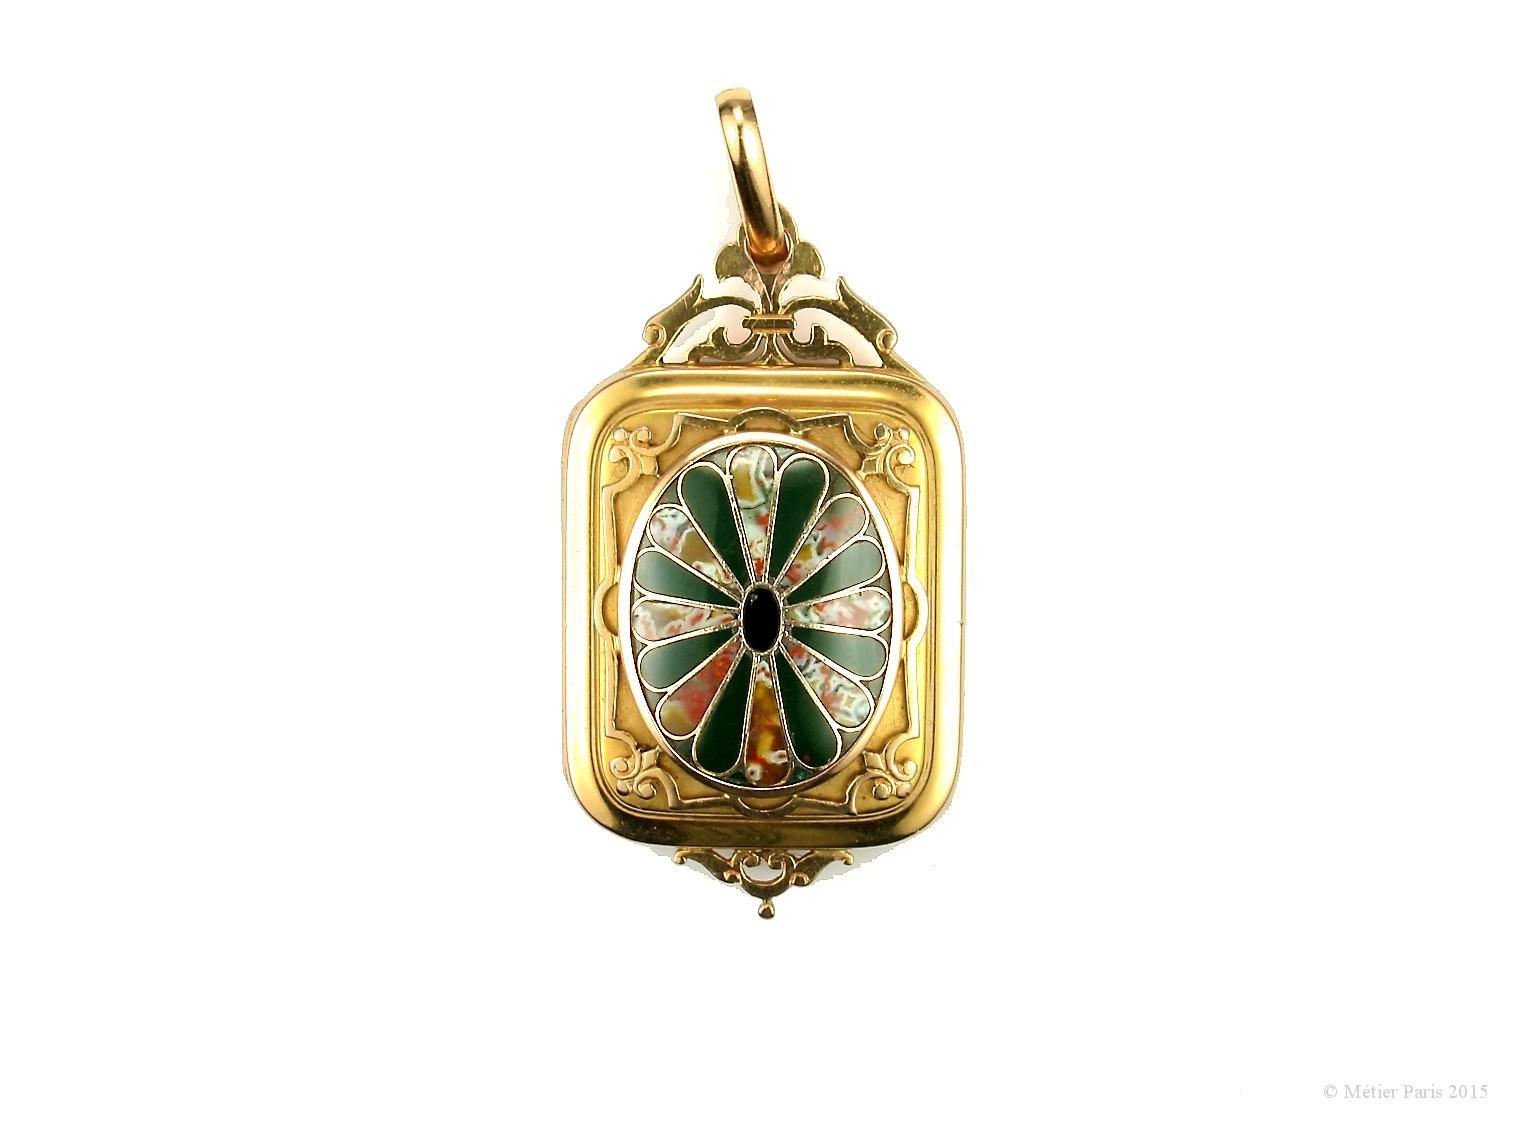 A Fine Victorian Scottish Agate Locket Pendant, mid- to late-1800s